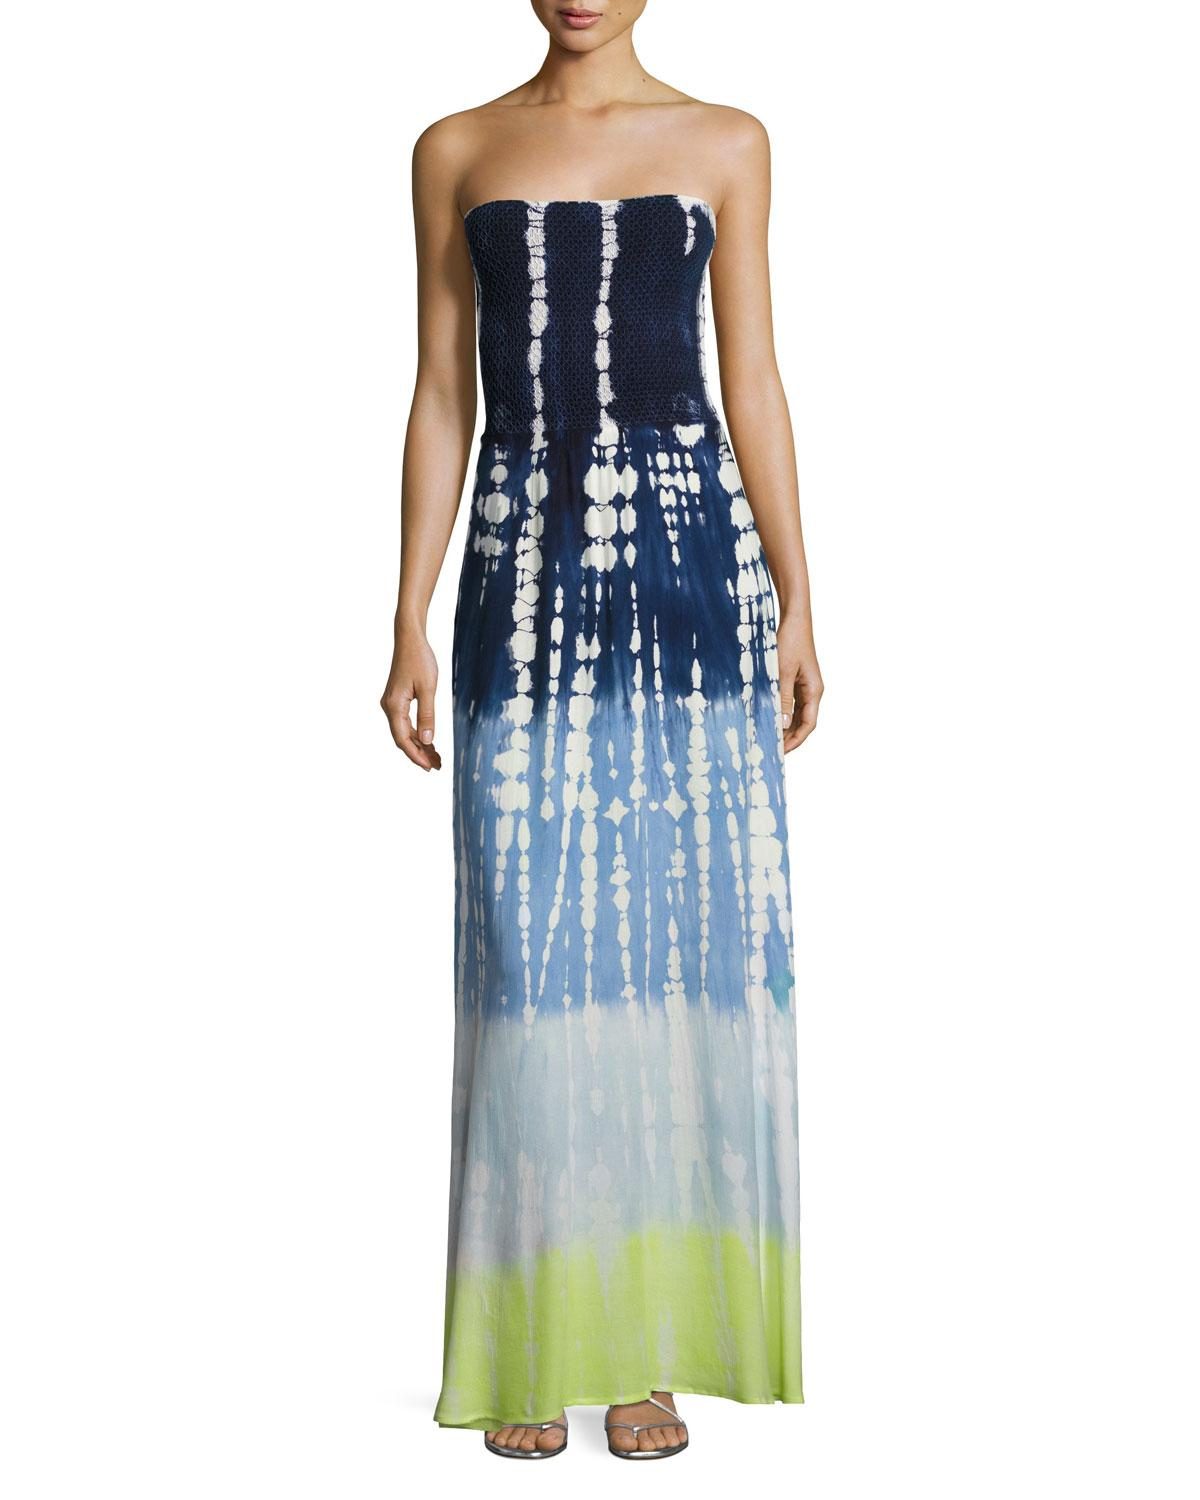 Lyst - Young Fabulous & Broke Lively Smocked Strapless ...